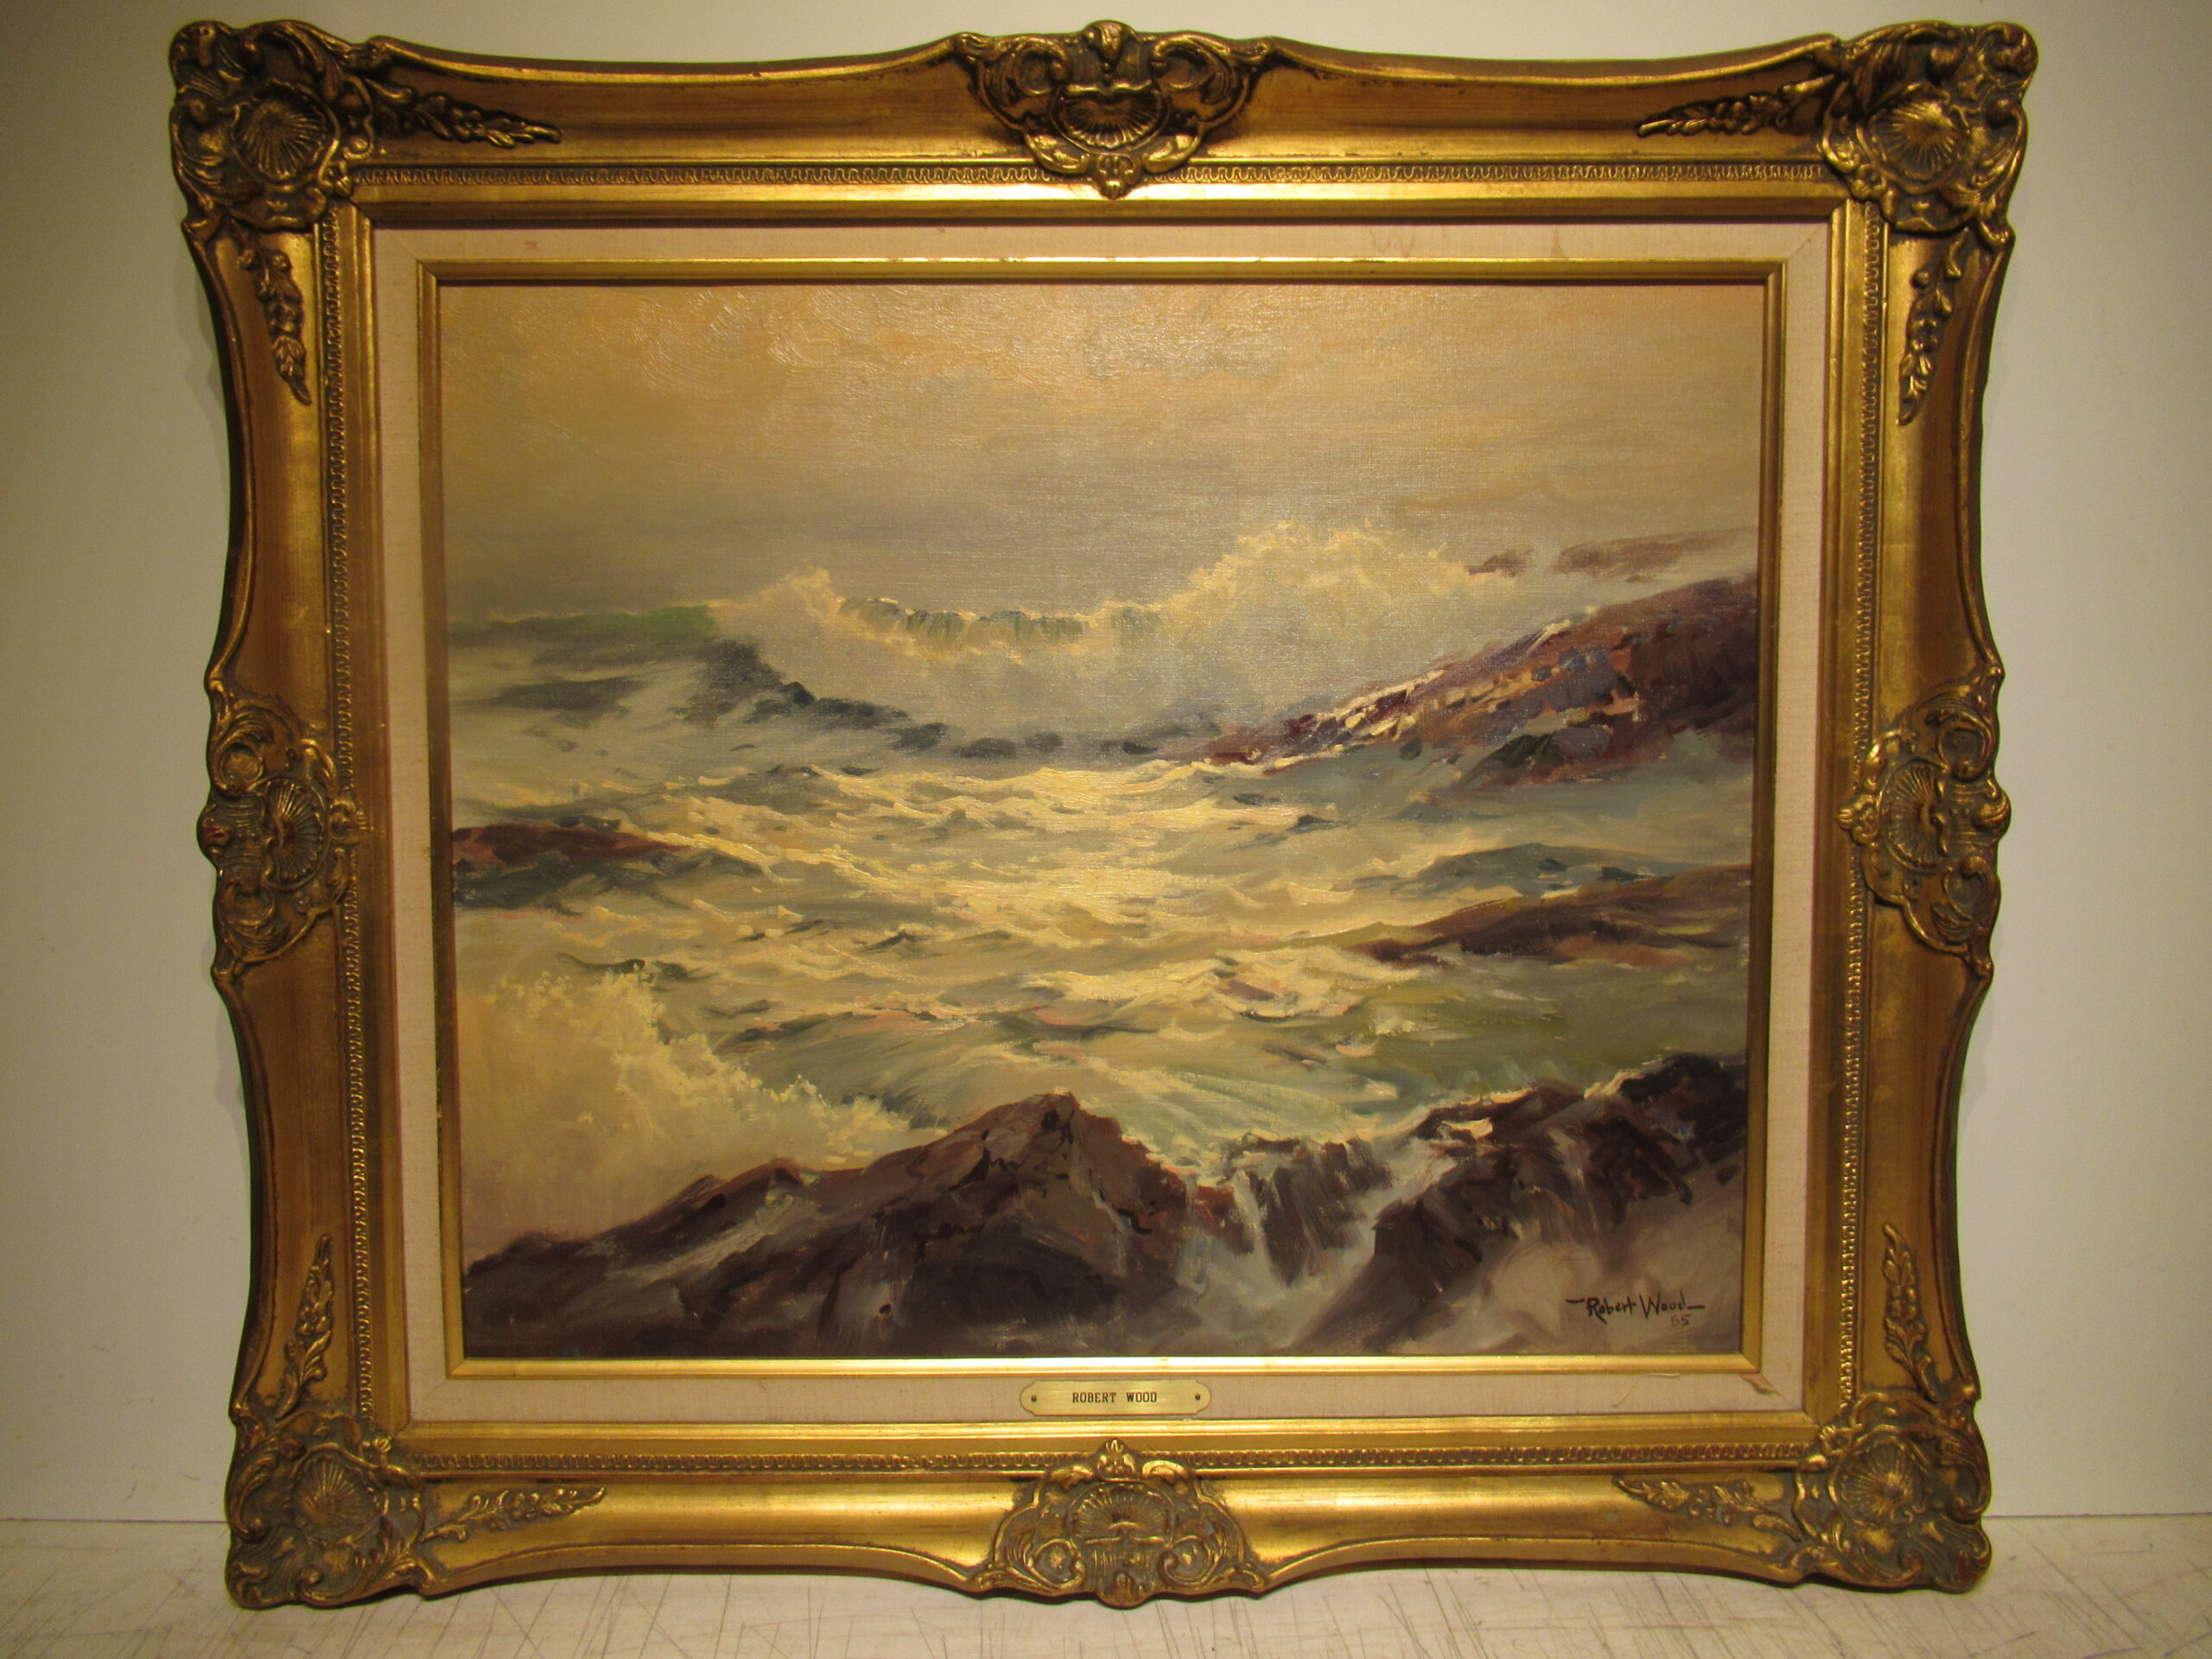 20×24 Robert Wood 1955 The Breaken Oil Painting